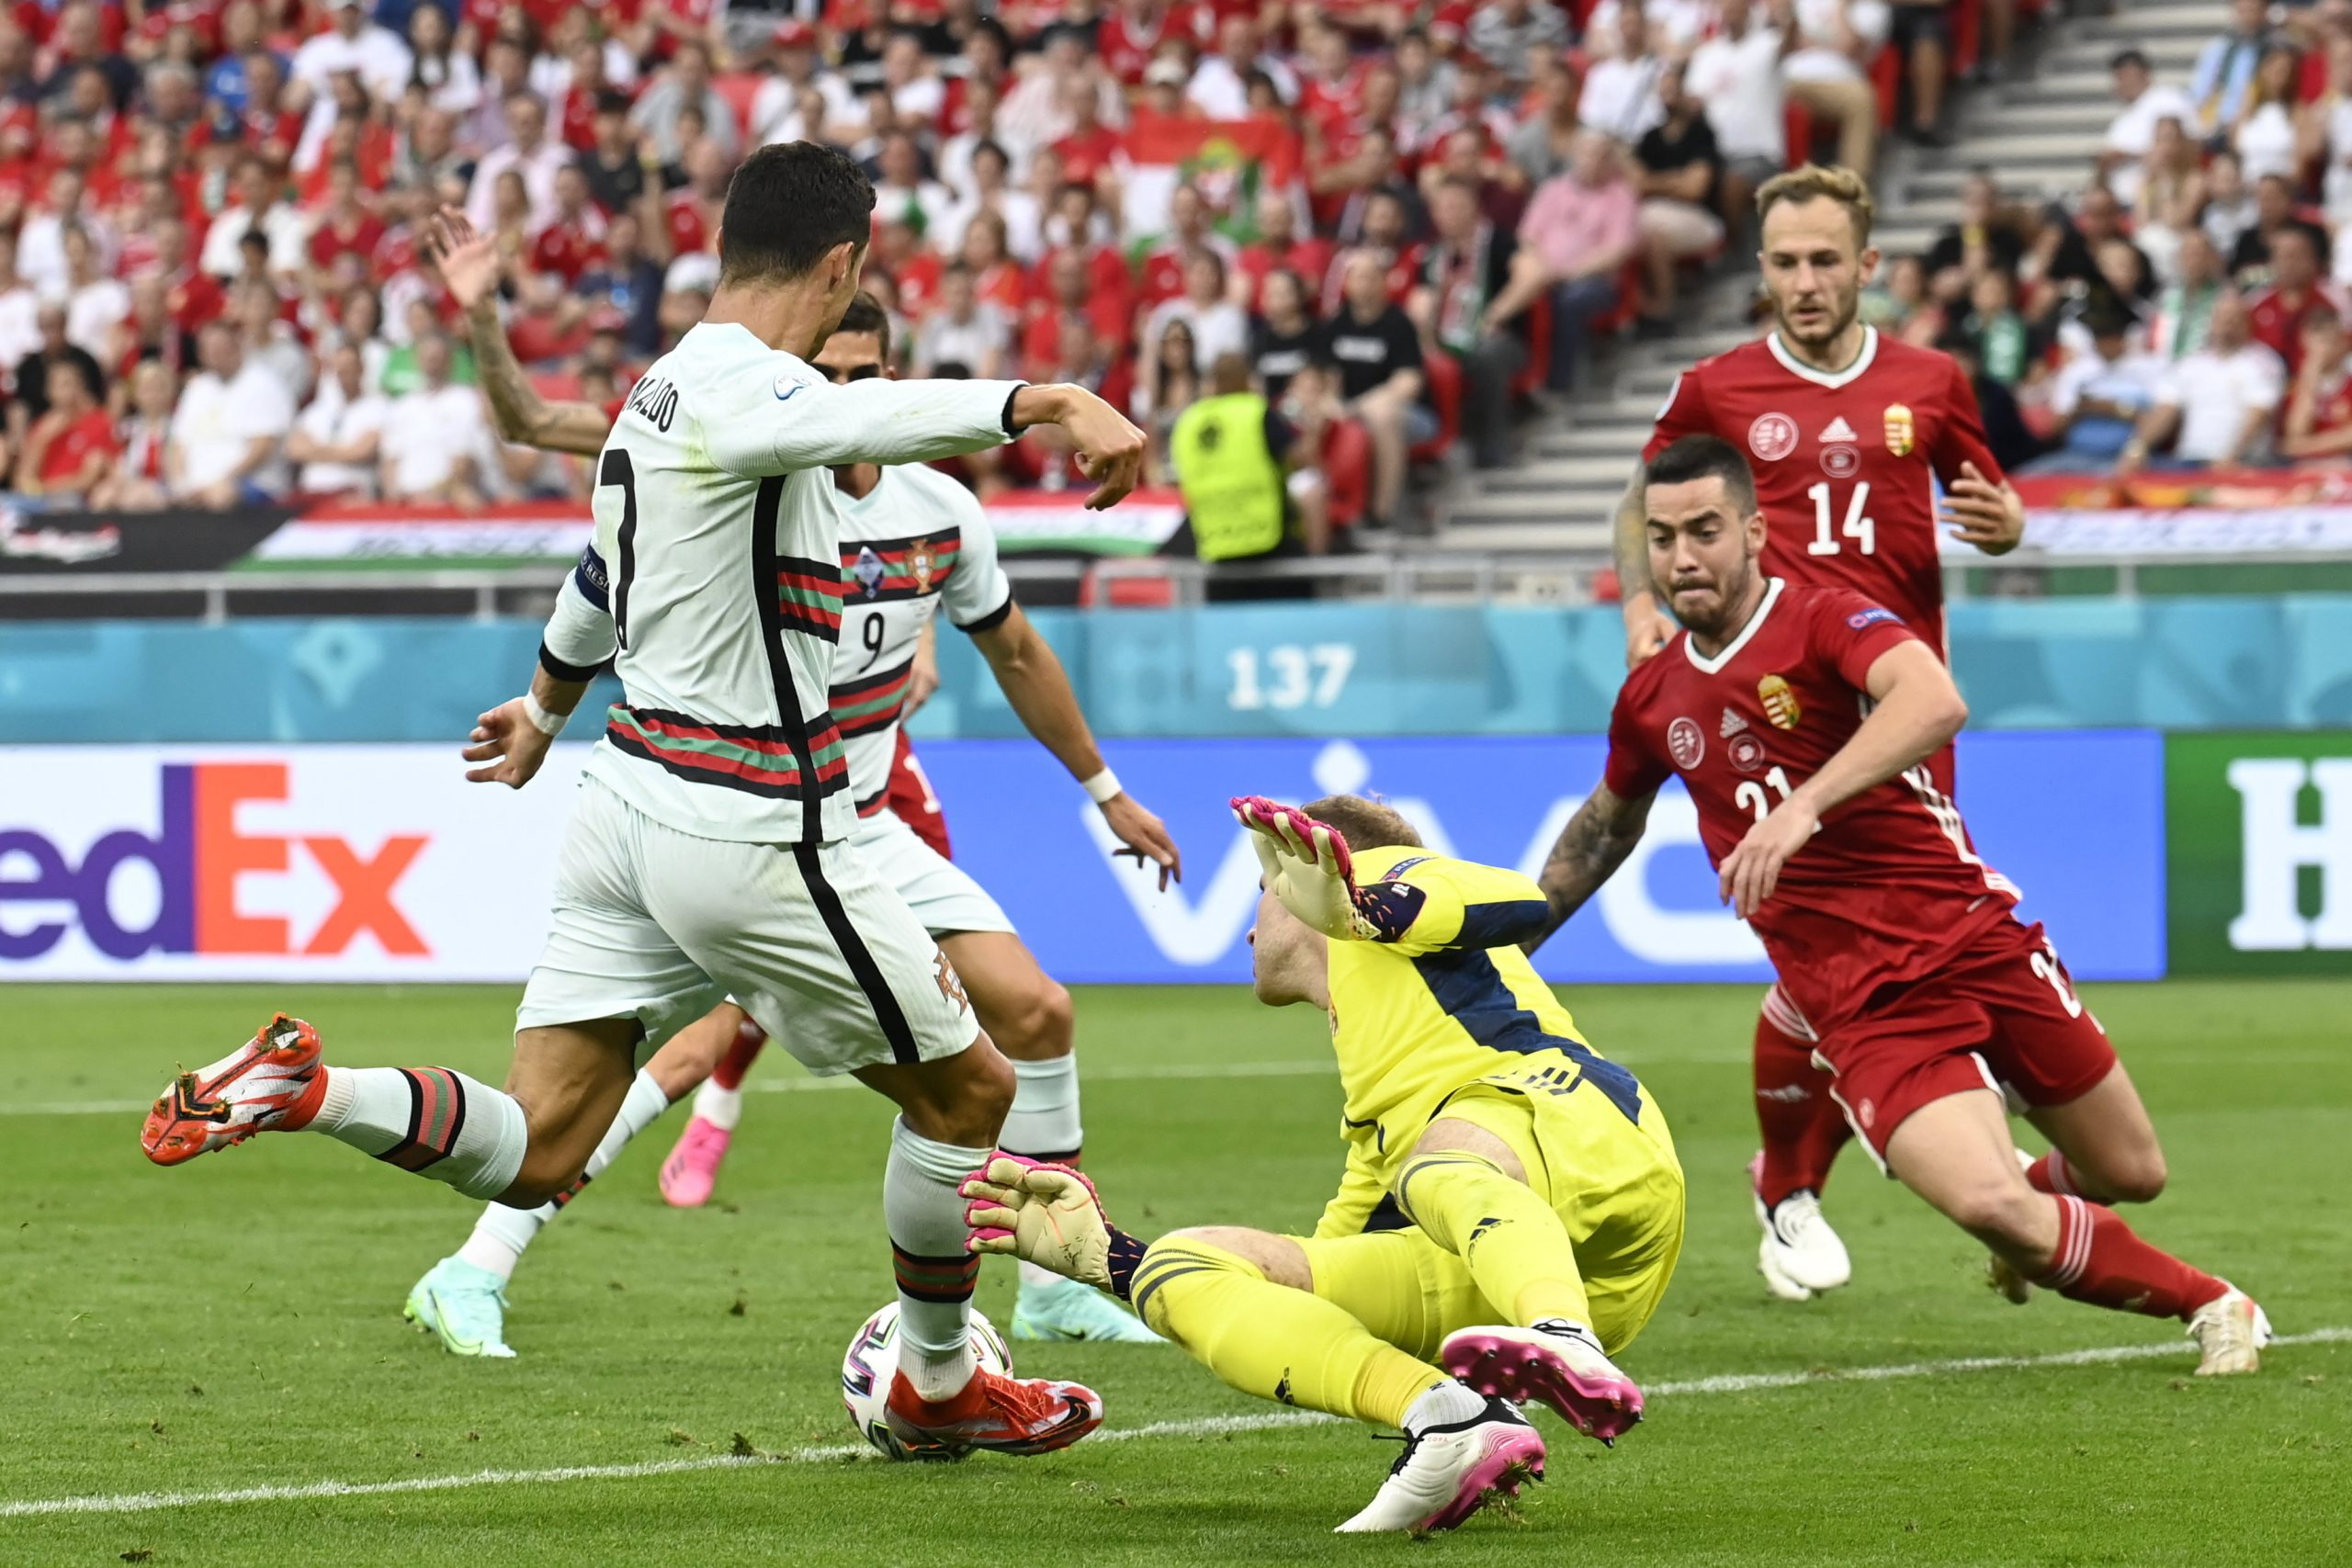 EURO 2020: Luck Favors Portugal, but Hungary Leaves Pitch with Heads Held High